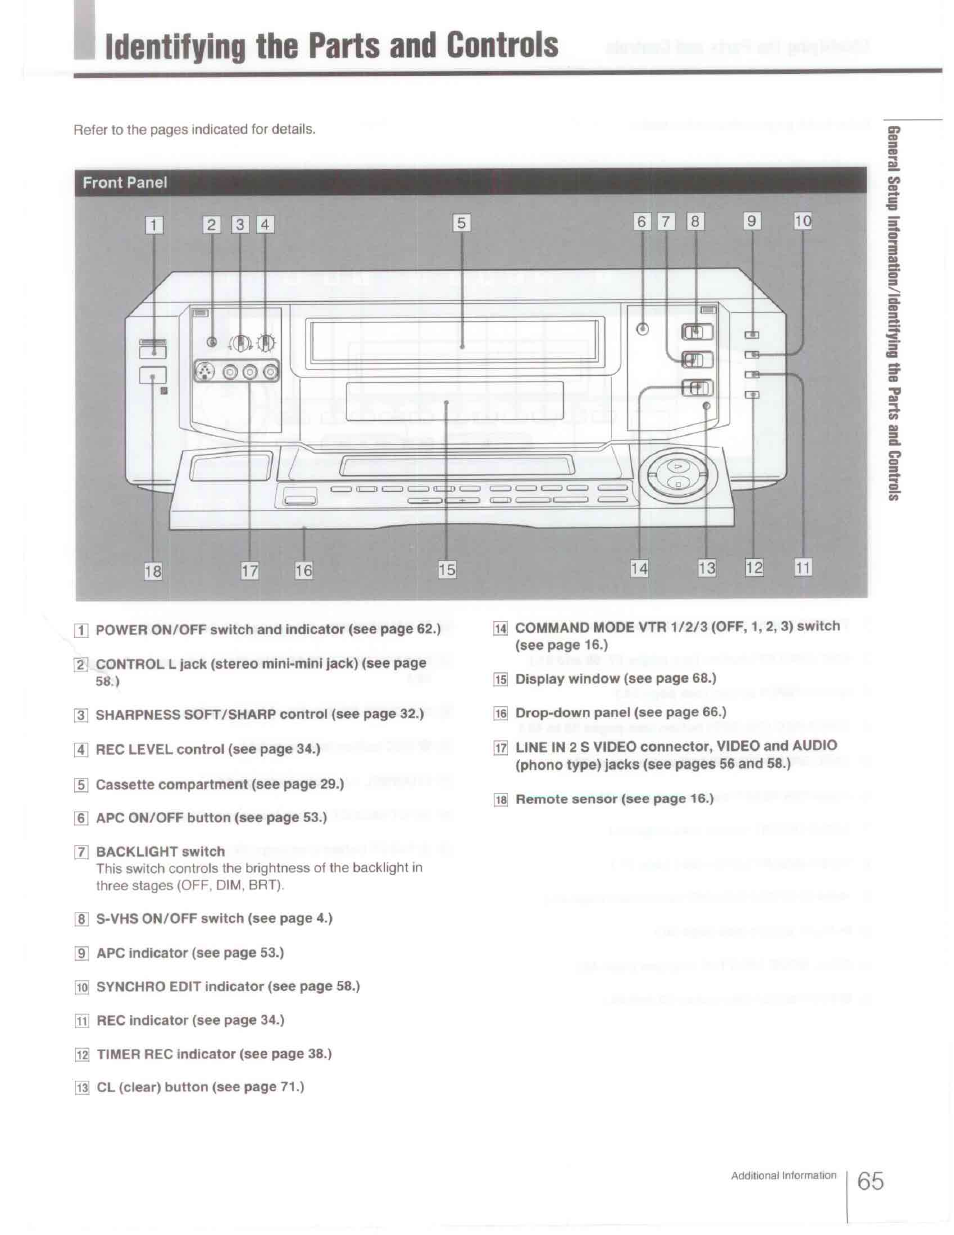 6052b515a1f Identifying the parts and controls | Sony SLV-R1000 User Manual | Page 65 /